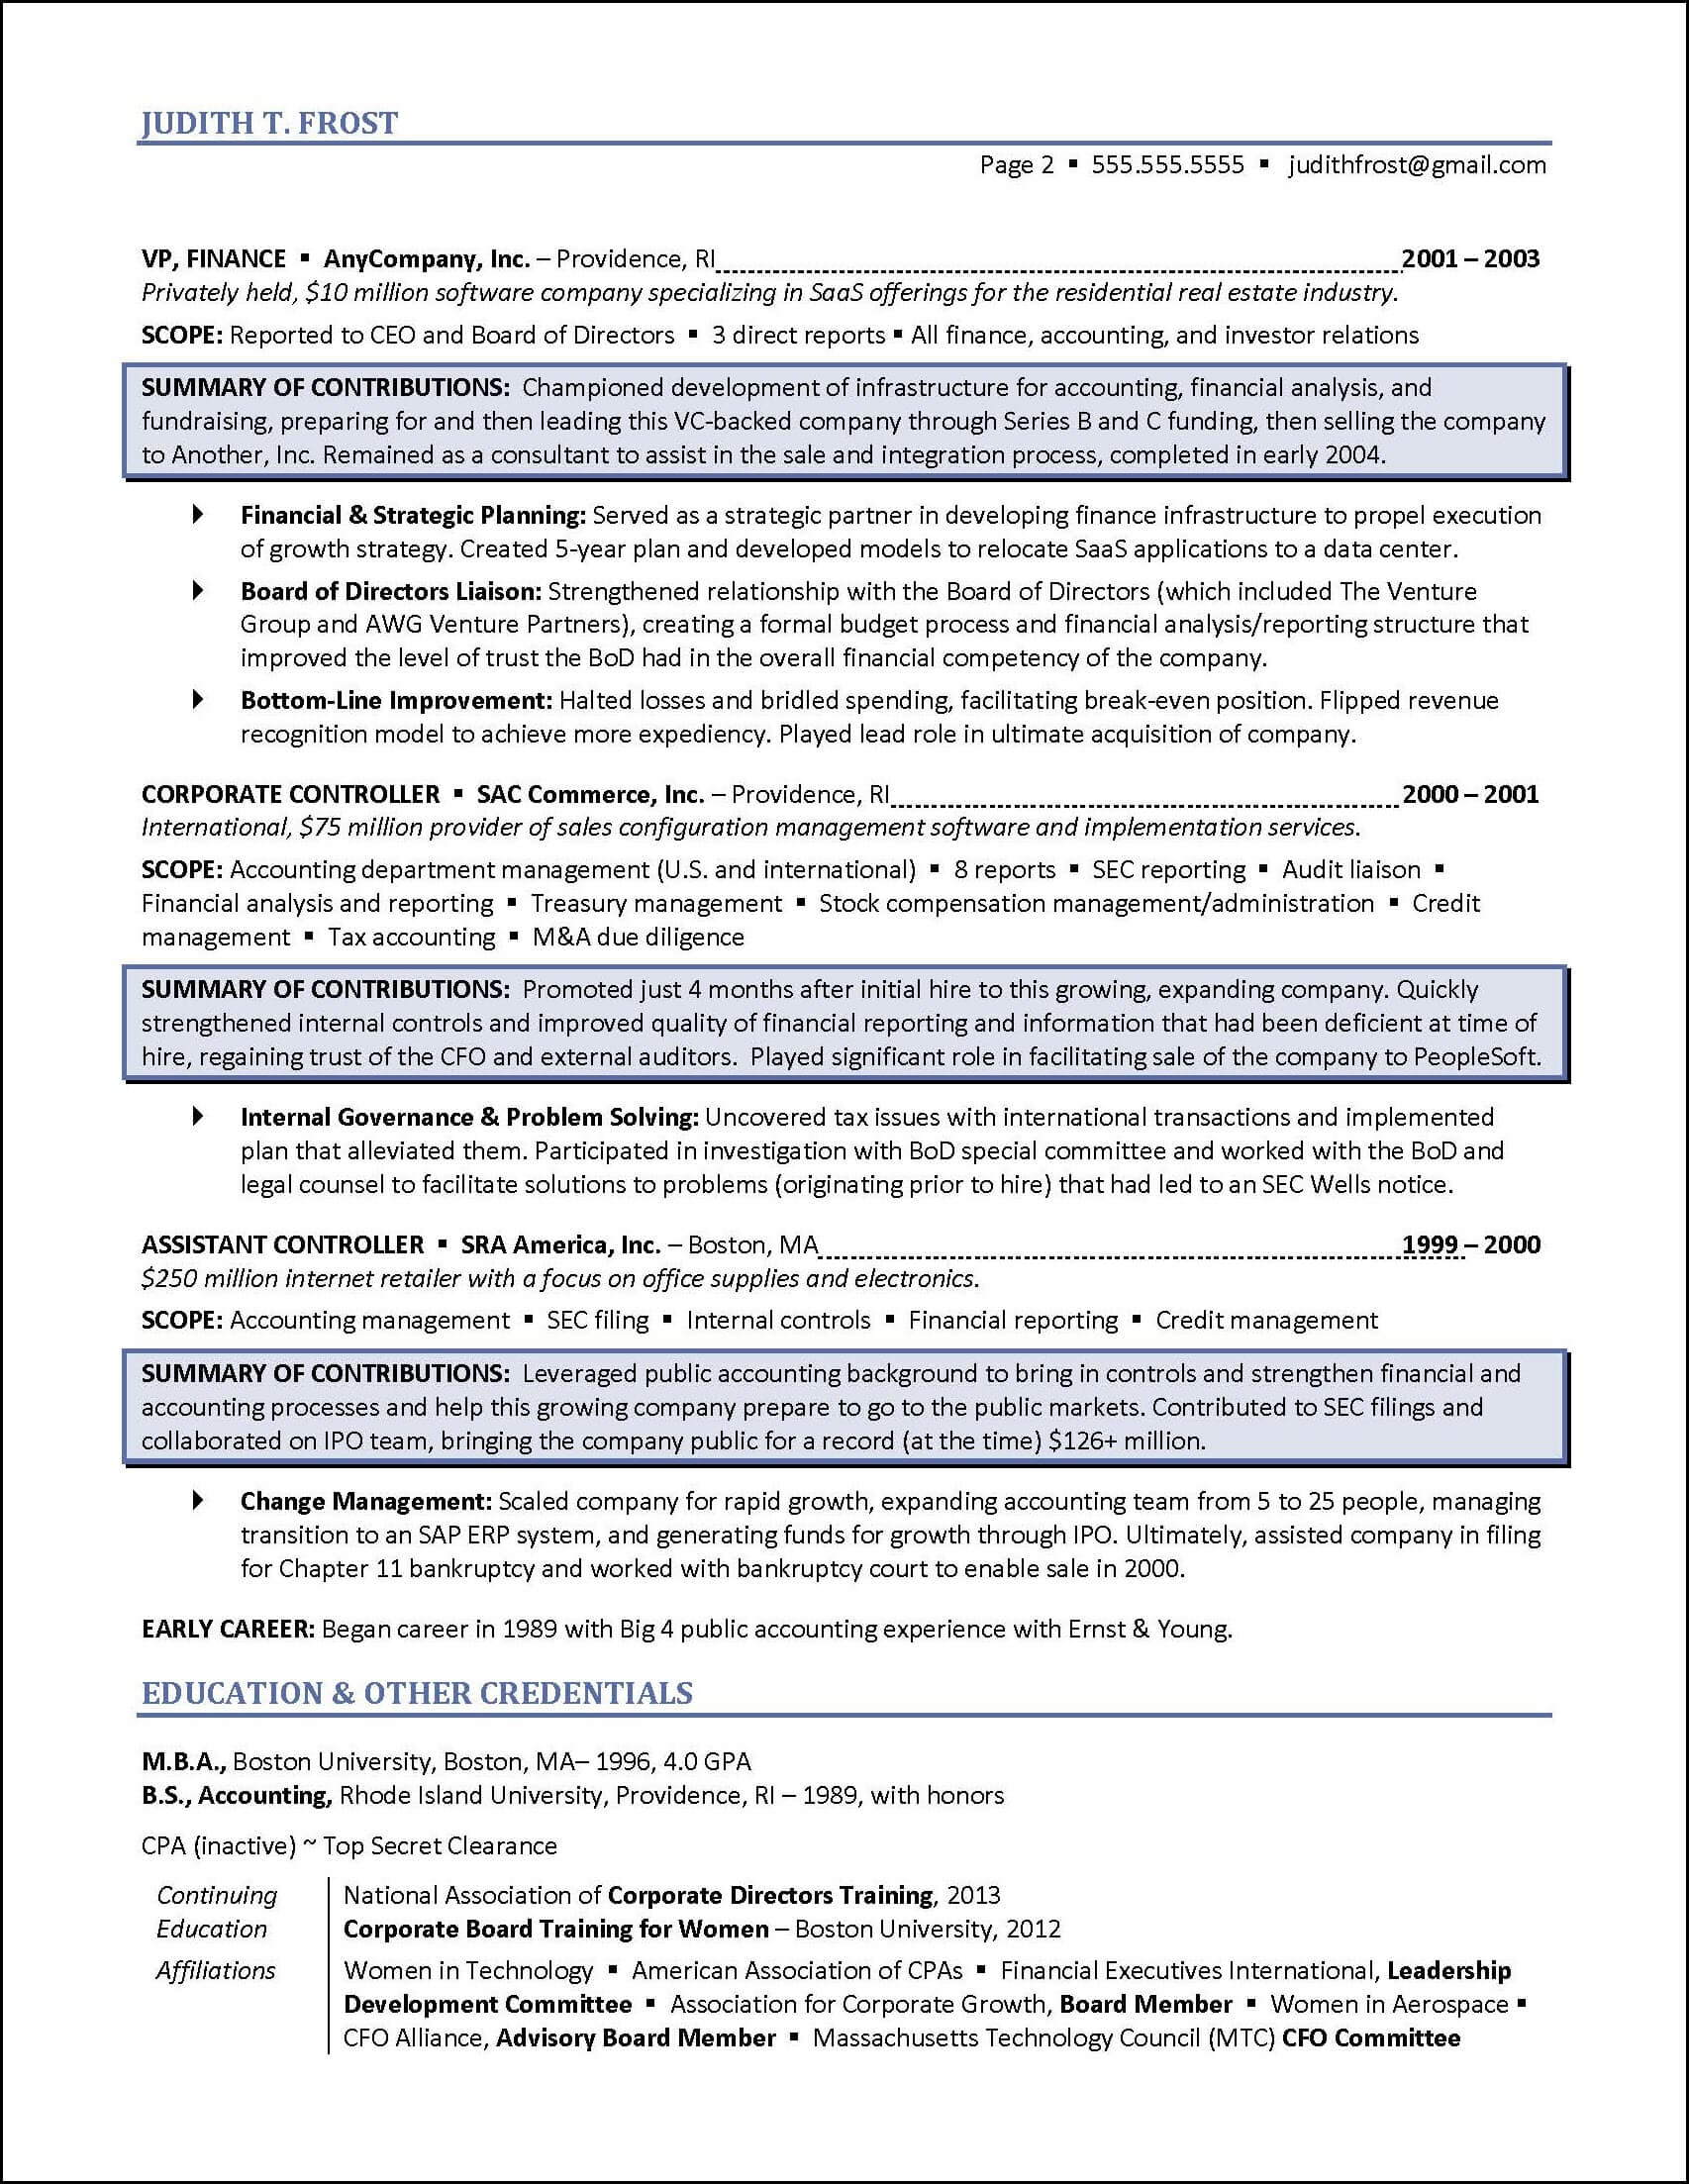 board of directors resume example - Corporate Resume Samples